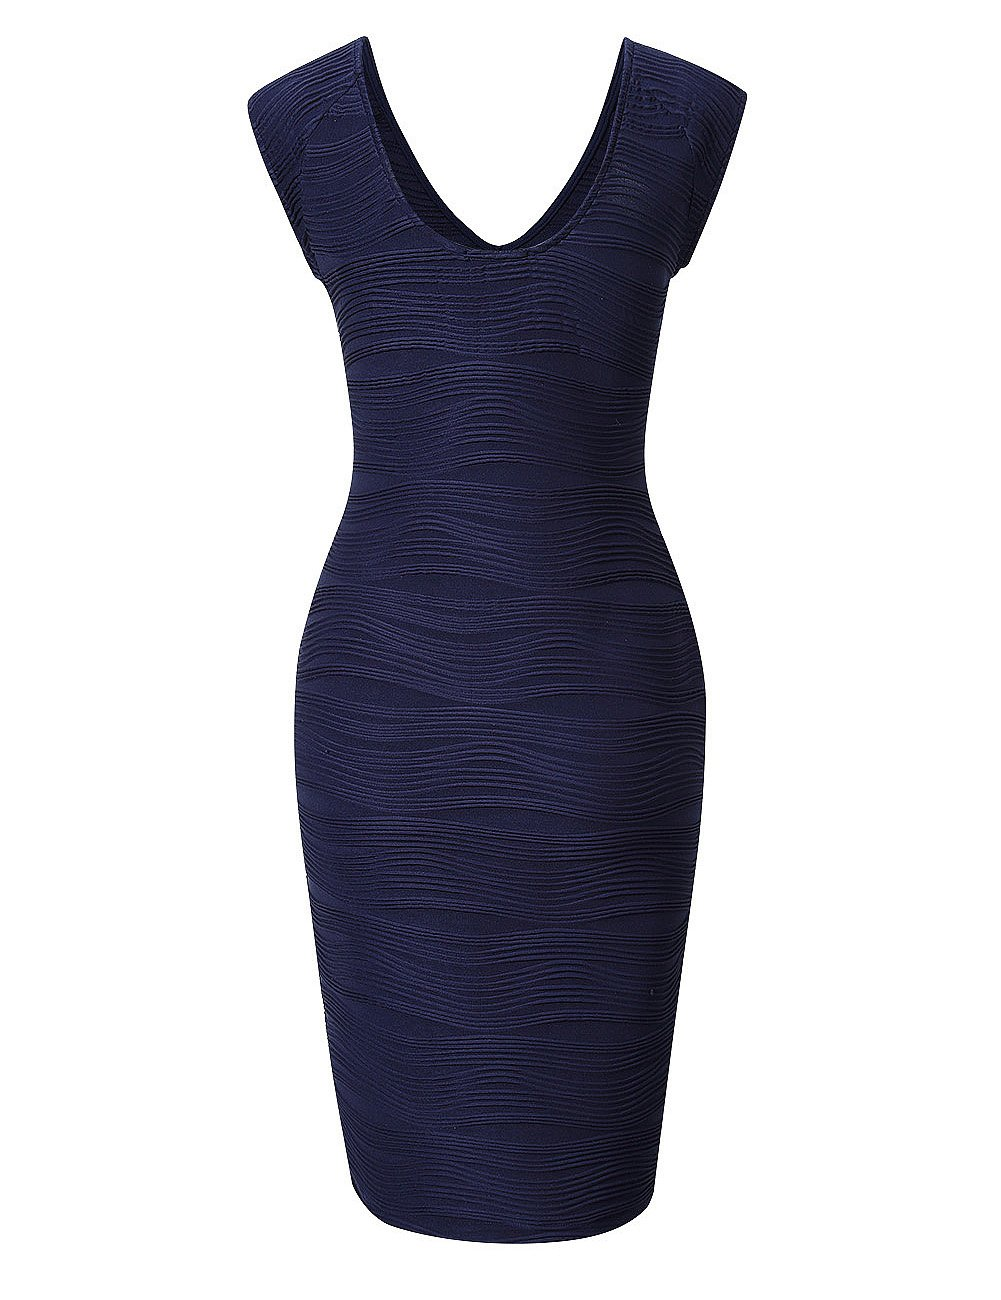 Available at Amazon: HiQueen Women's Sexy Sleeveless V Neck Cocktail Business Bodycon Pencil Dress